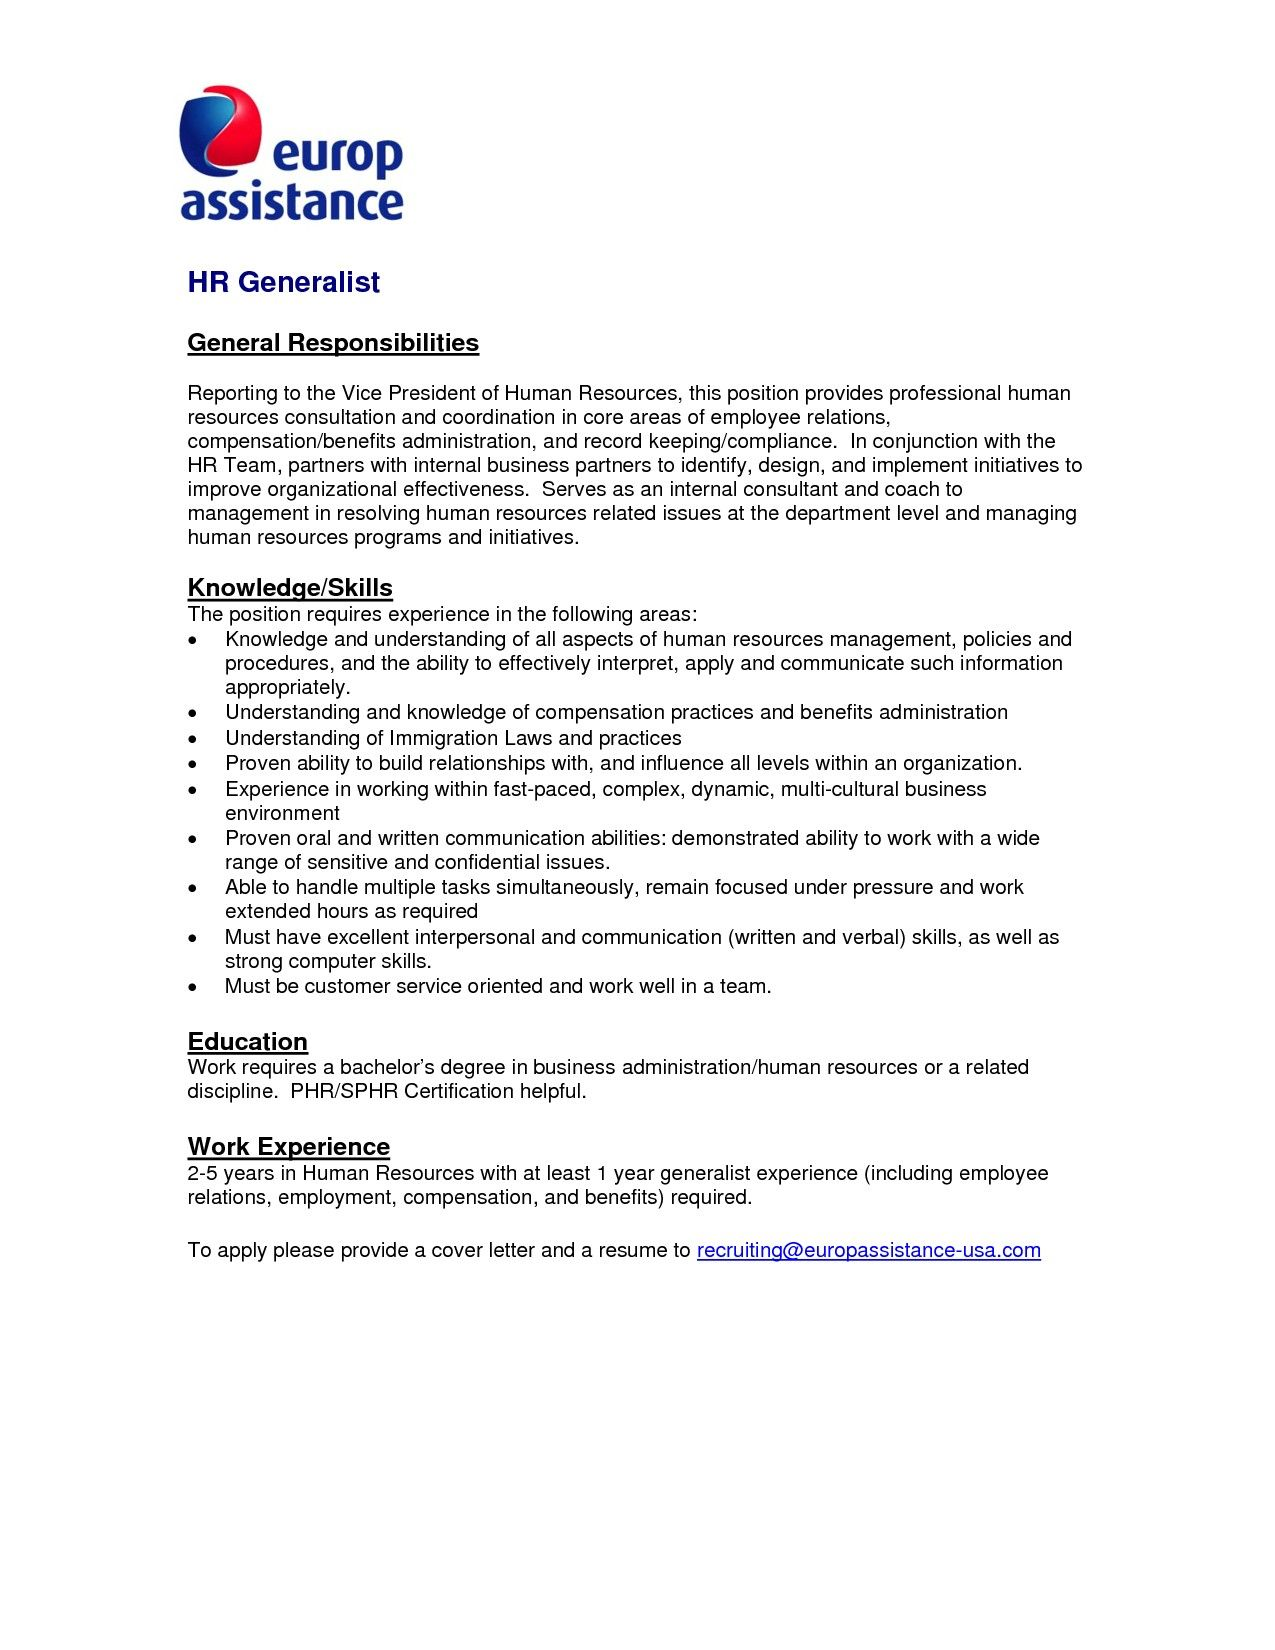 23 Human Resources Cover Letter Generalist Letters Mitocadorcoreano